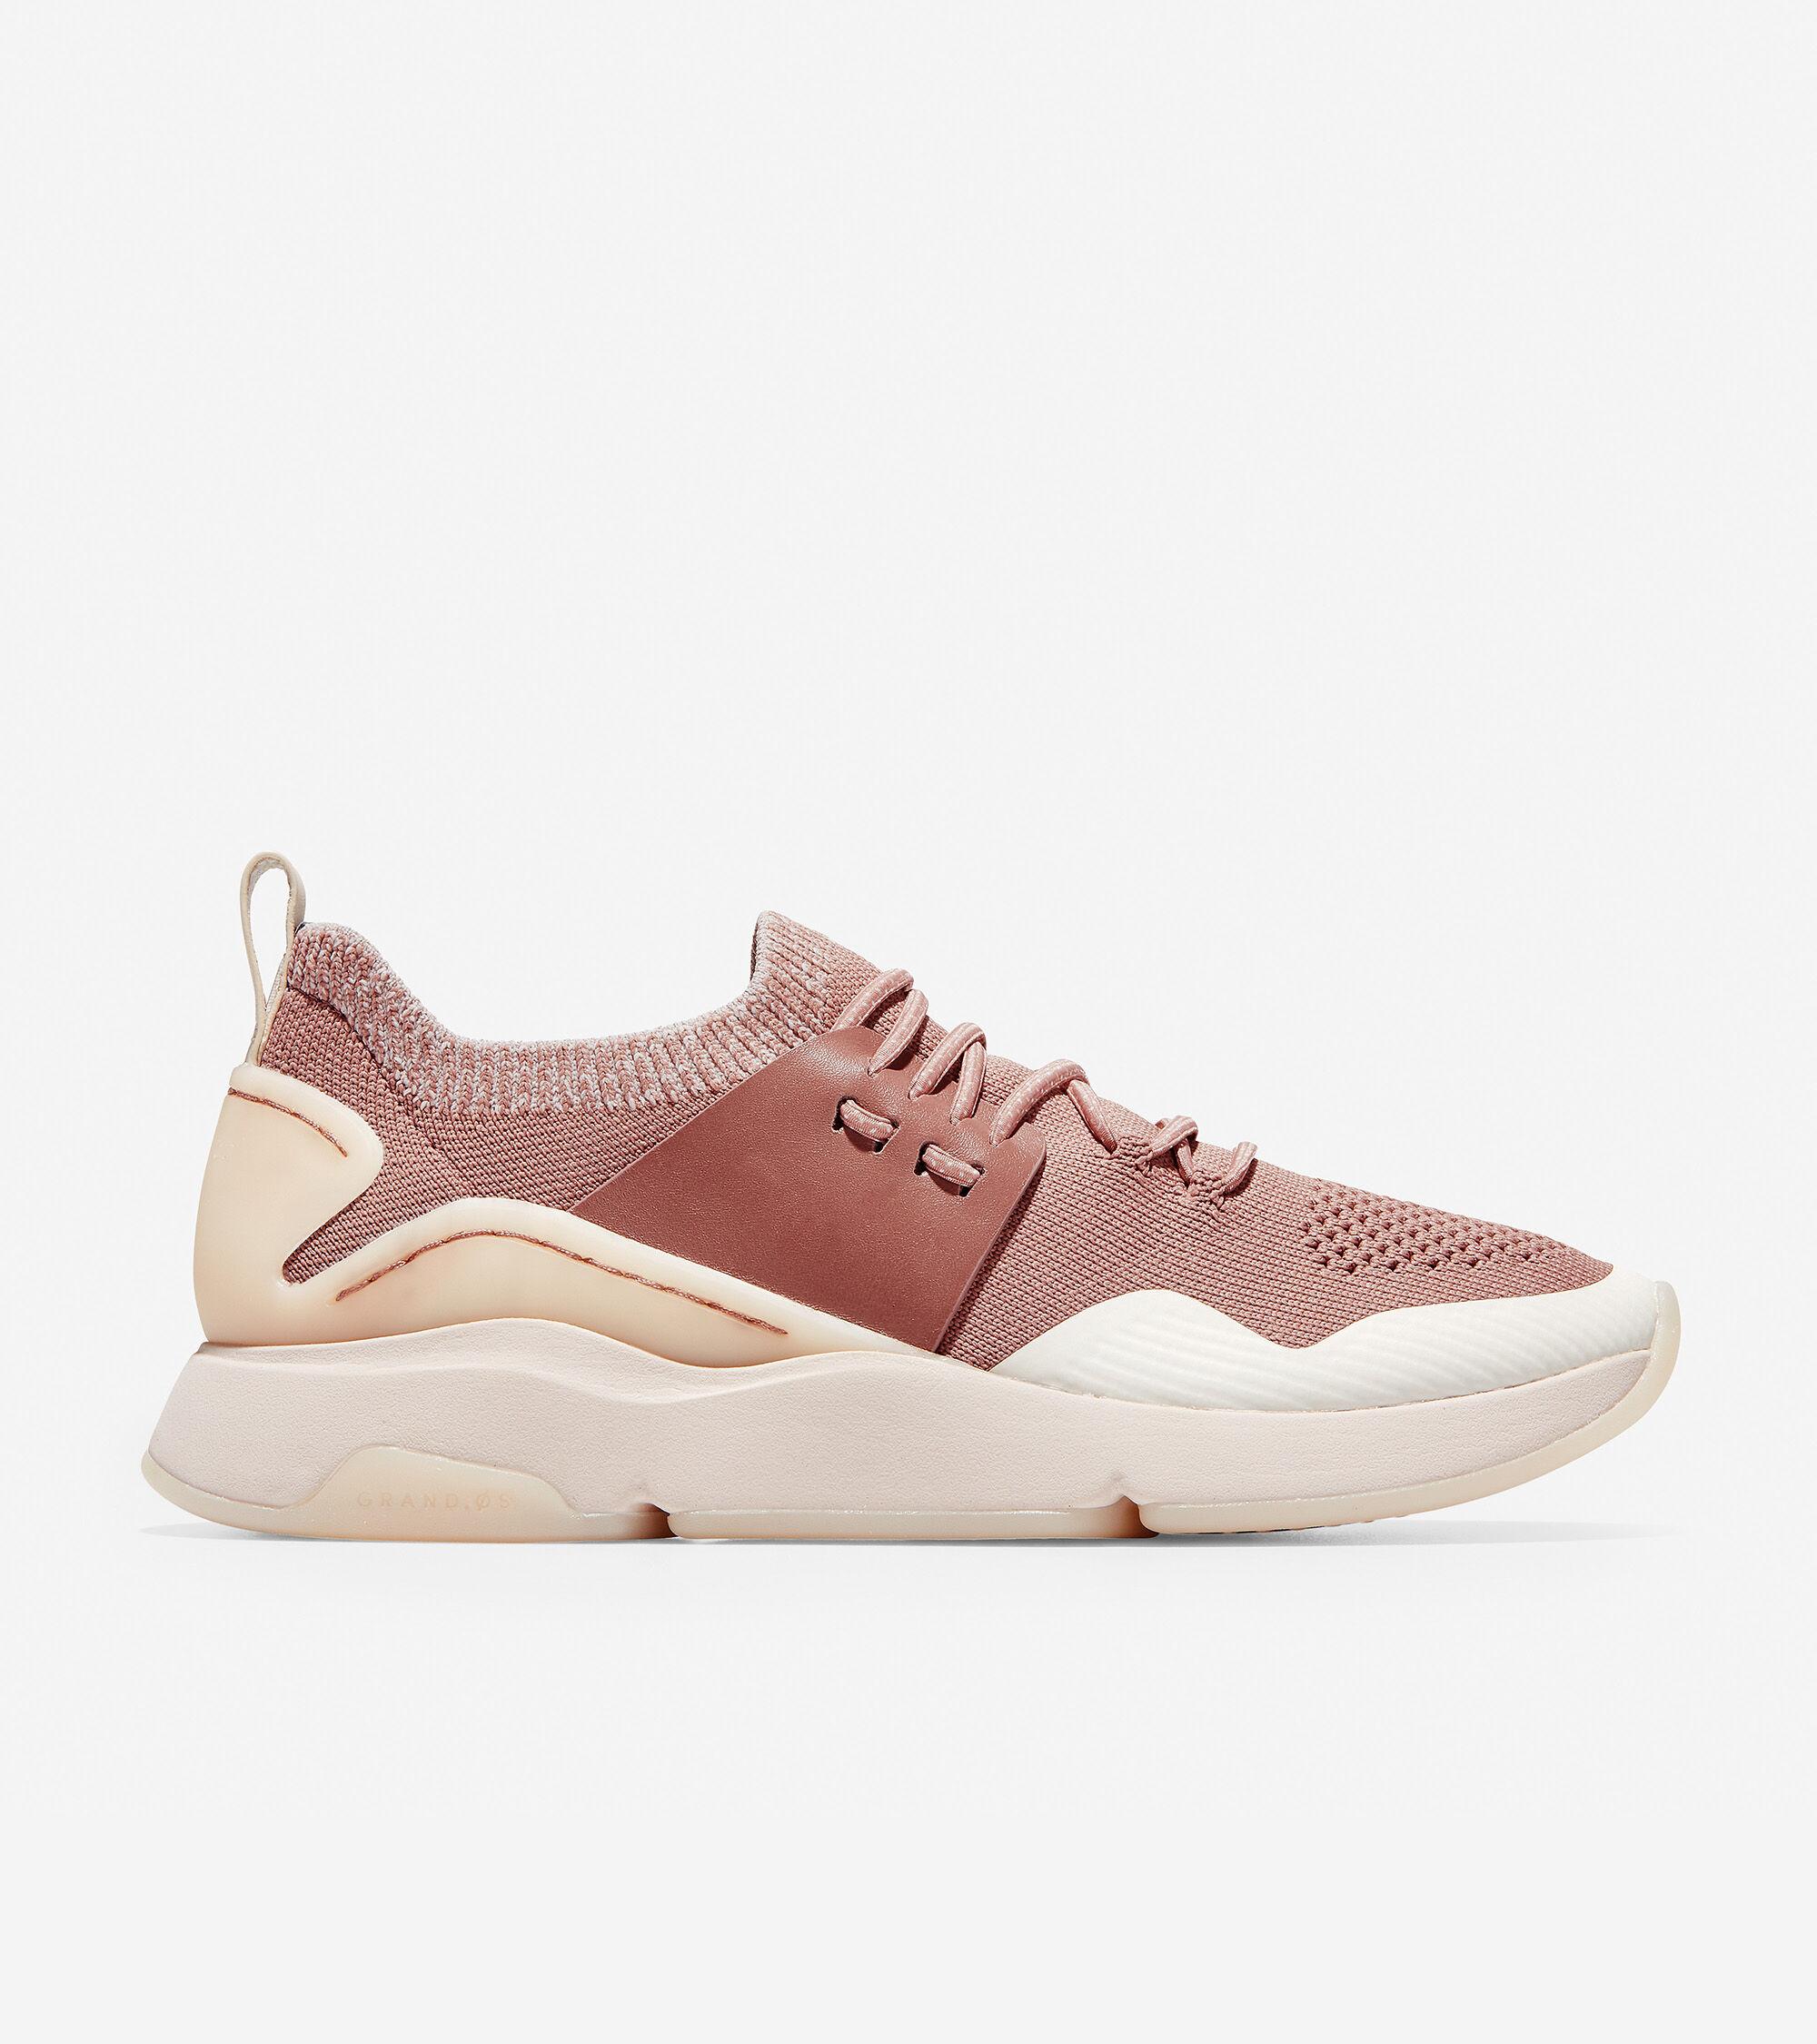 Cole Haan Women's ZEROGRAND All-Day Trainer with Stitchlite